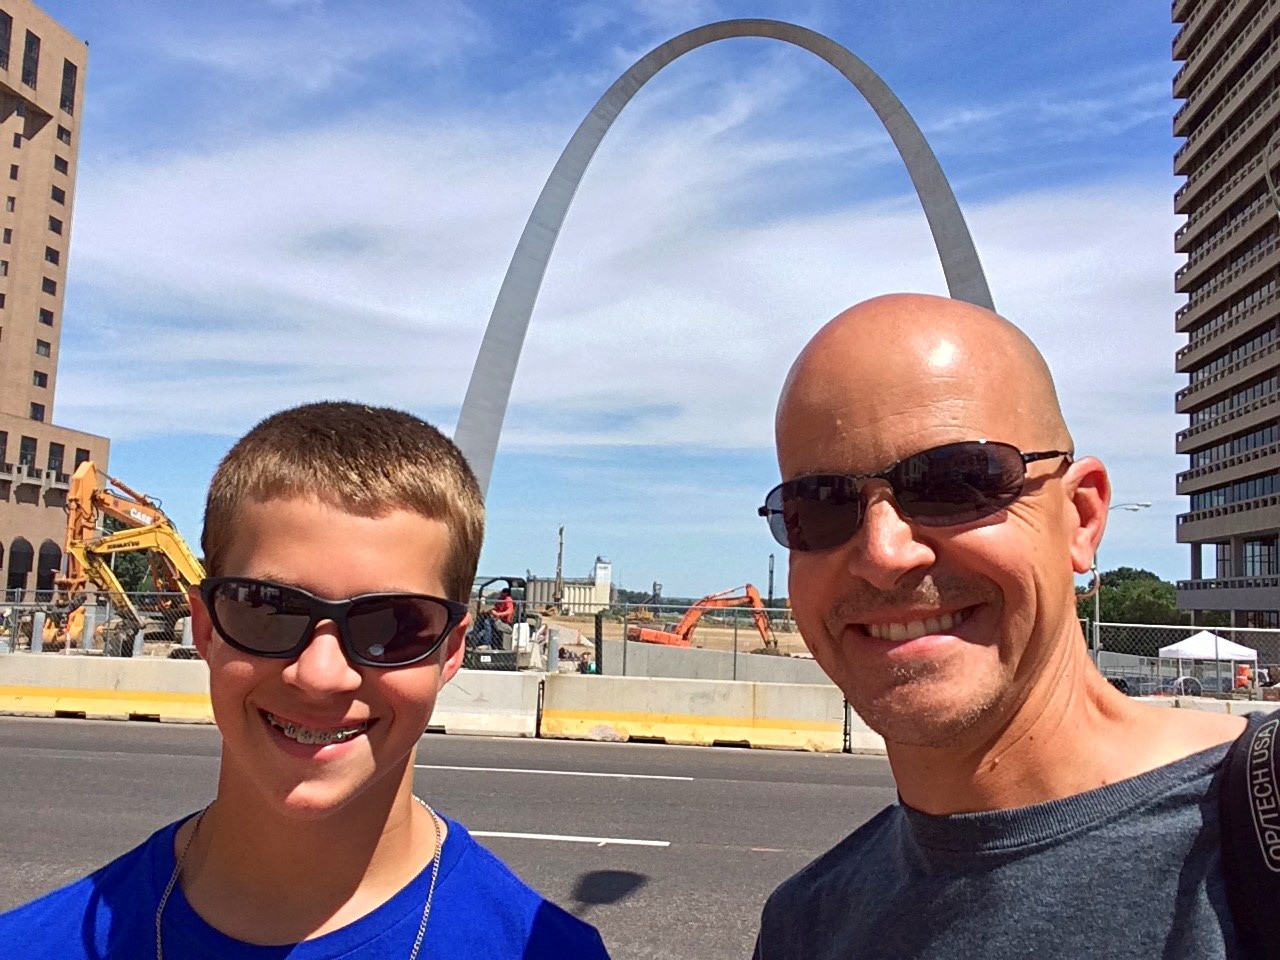 The next day's adventures took us to the top of the Gateway Arch in St. Louis, an engineering marvel that was built in the 1960s.